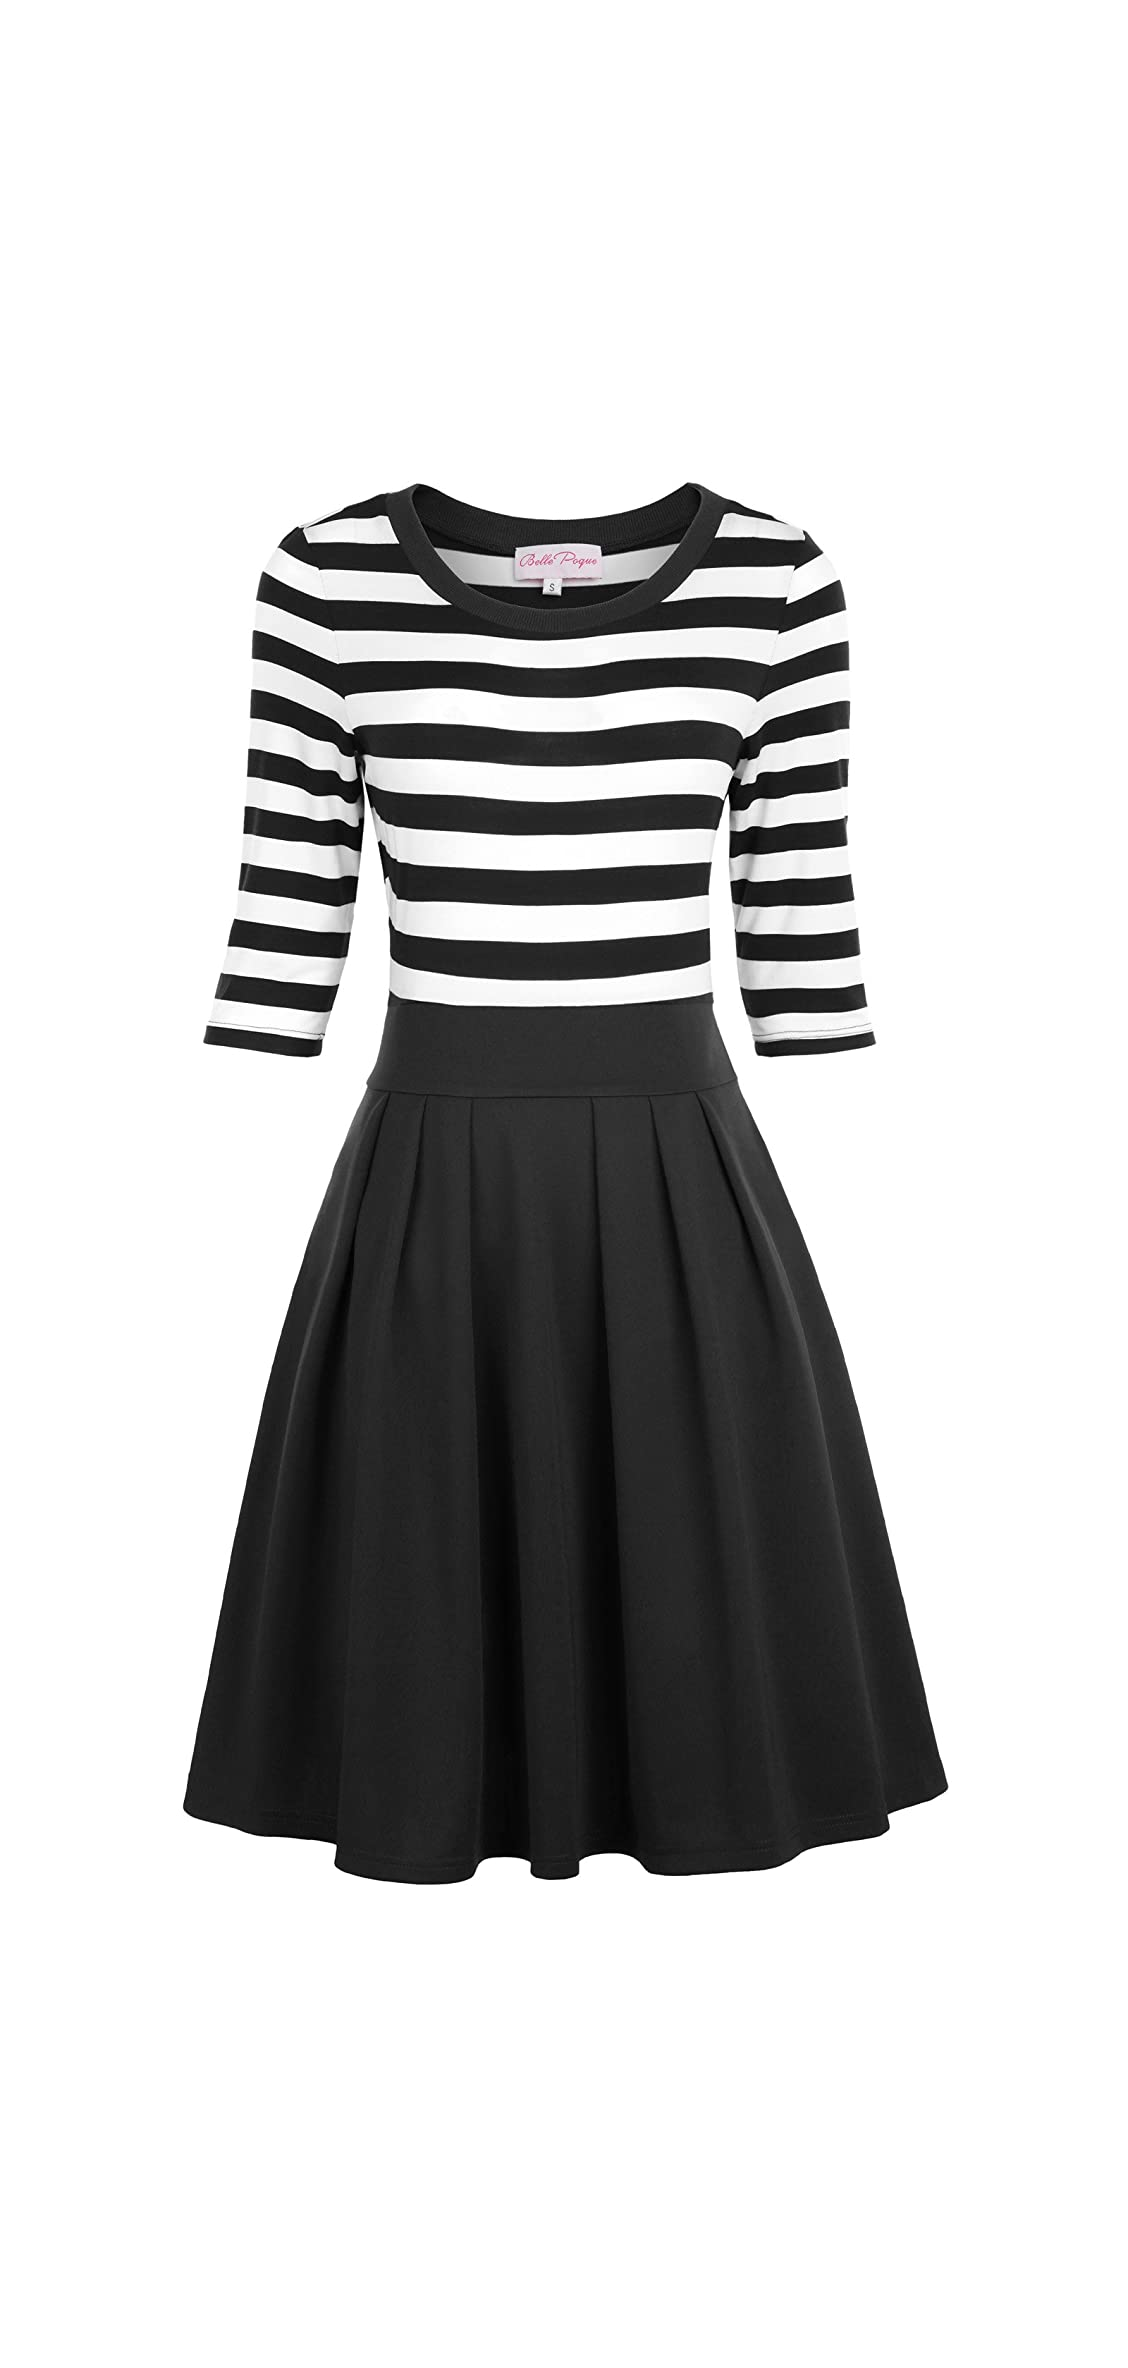 Women's Classy Scoop Neck Striped Retro Swing Dress